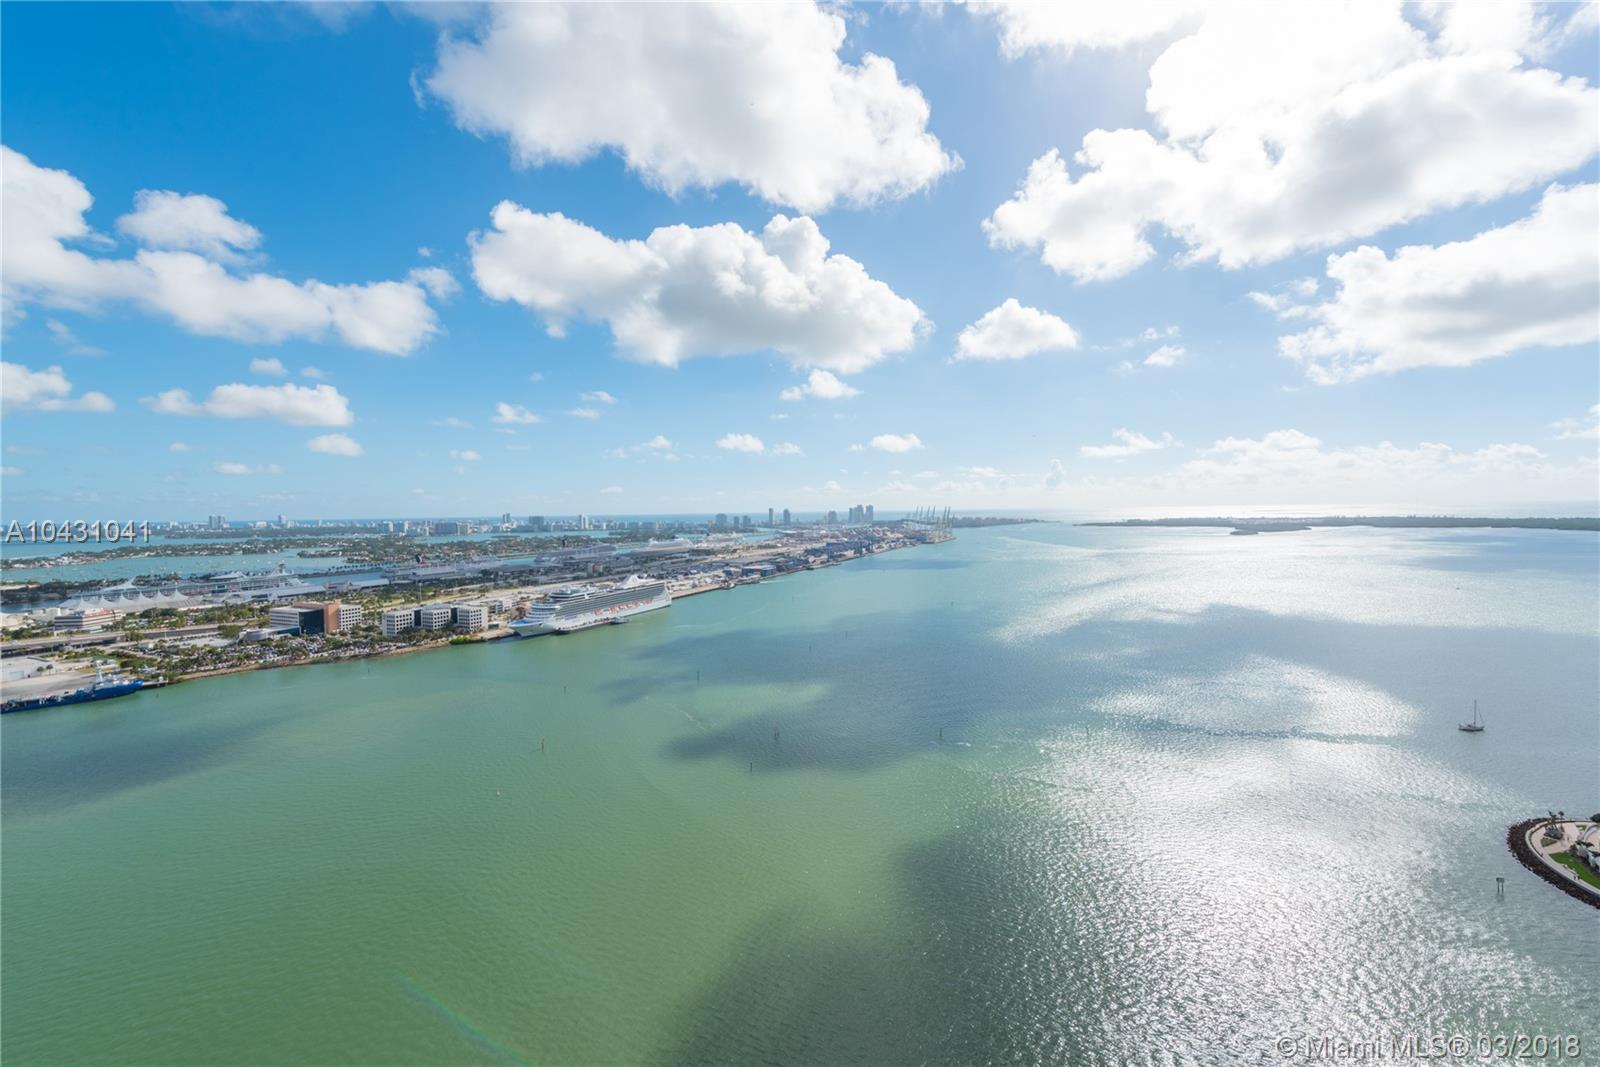 Enjoy Breathtaking Panoramic Views Of Biscayne Bay, Port Of Miami And The Miami Beach Skyline From Every Window. This Tastefully Remodeled Penthouse Features 3 Bedrooms, 2 Bathrooms, Wood Porcelain Floors, 14 Ft High Ceilings And An Italian Style Kitchen. The Building Offers Resort-Style Amenities Which Include 24-Hour Security, Excellent Concierge And Valet Services, A Recently Renovated Pool And State Of The Art Gym. Minutes Away From The Finest Restaurants And Downtown Hotspots Including A New Whole Foods Market. Wake Up Each Morning To A Magical Sunrise, Or Relax On Your Spacious Terrace Under The Evening Sky. Live The Miami Lifestyle In Permanent Vacation-Mode.